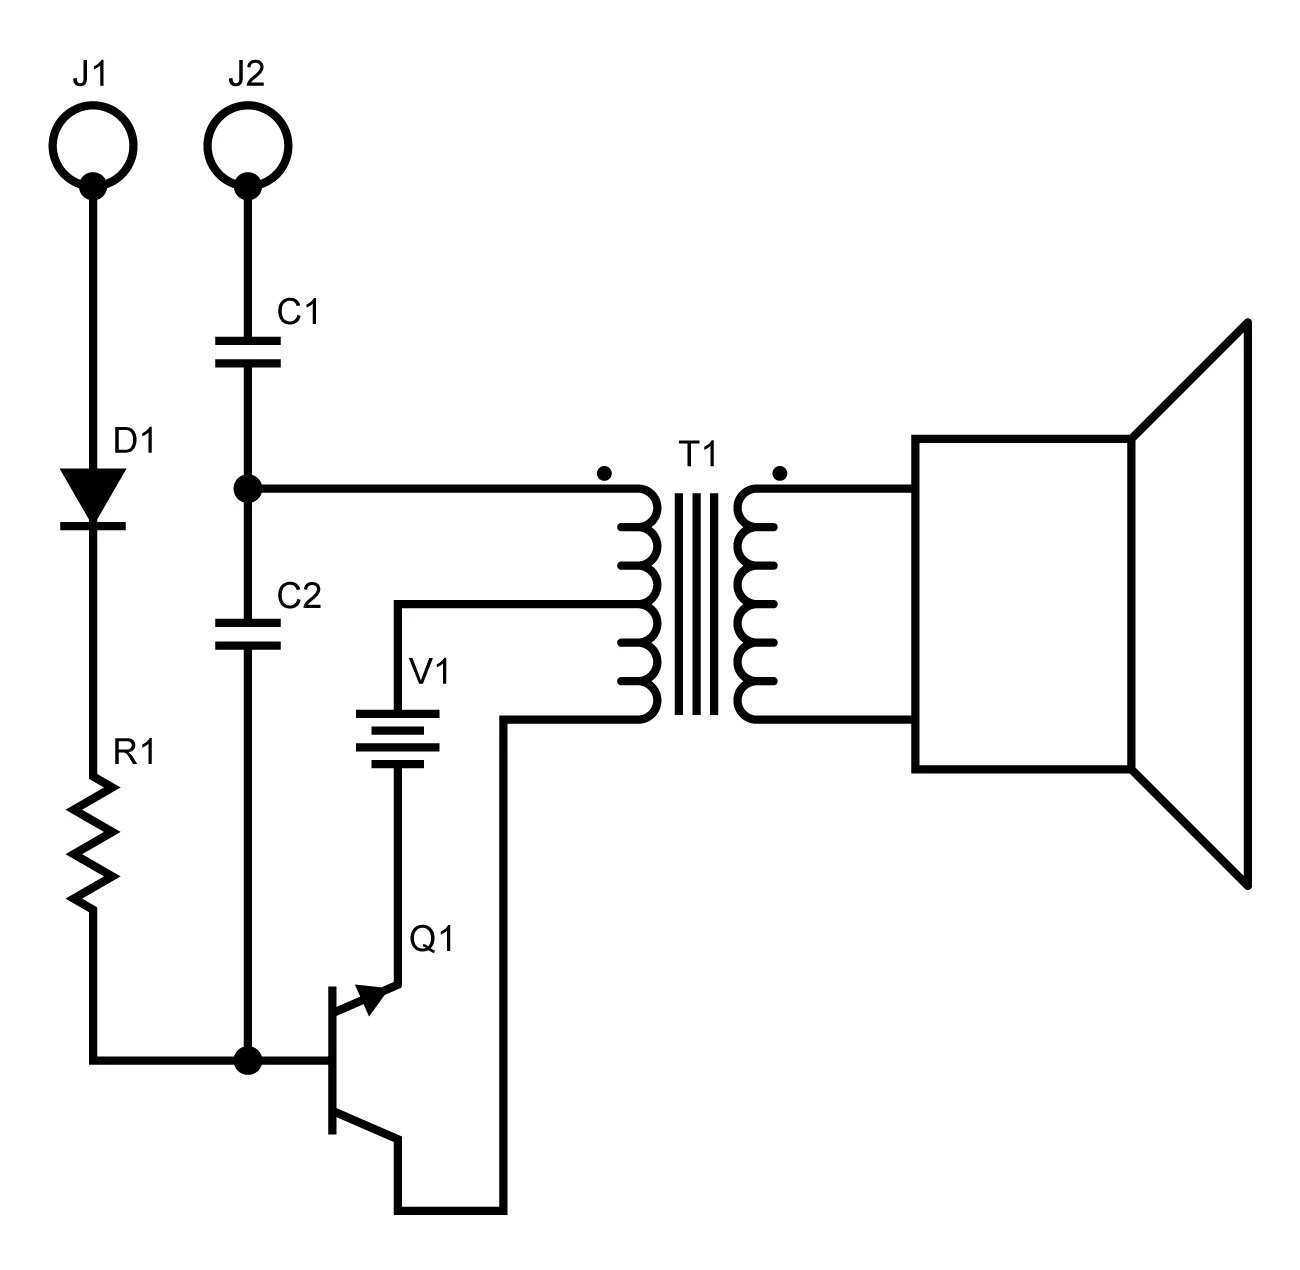 hight resolution of this is a single swing blocking oscillator circuit used to create narrow timing pulses